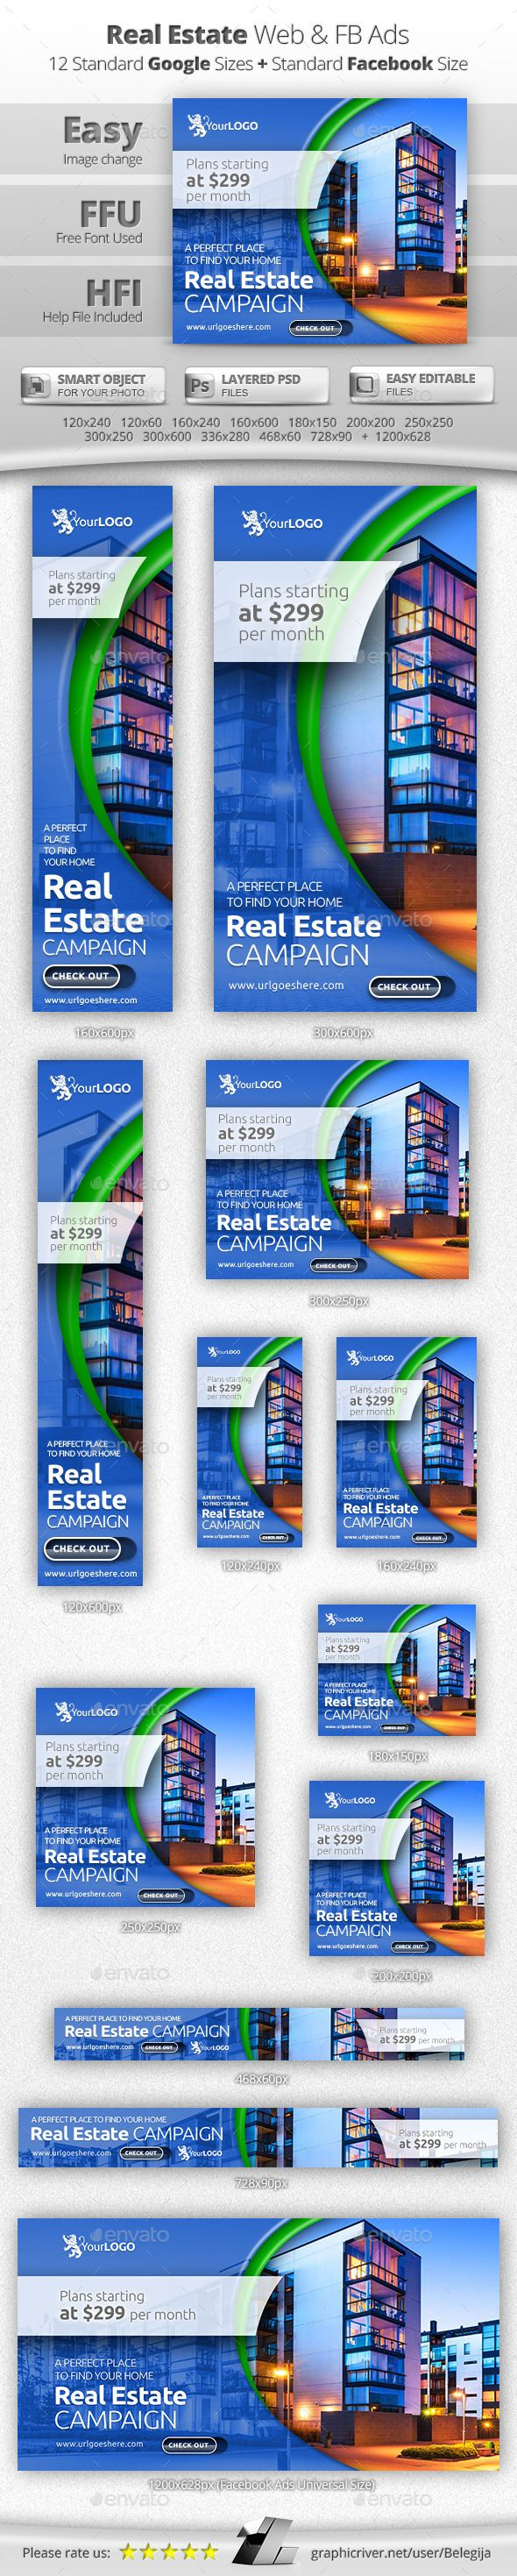 Real Estate Web & Facebook Banners Template #design Download: http://graphicriver.net/item/real-estate-web-facebook-banners/12950528?ref=ksioks